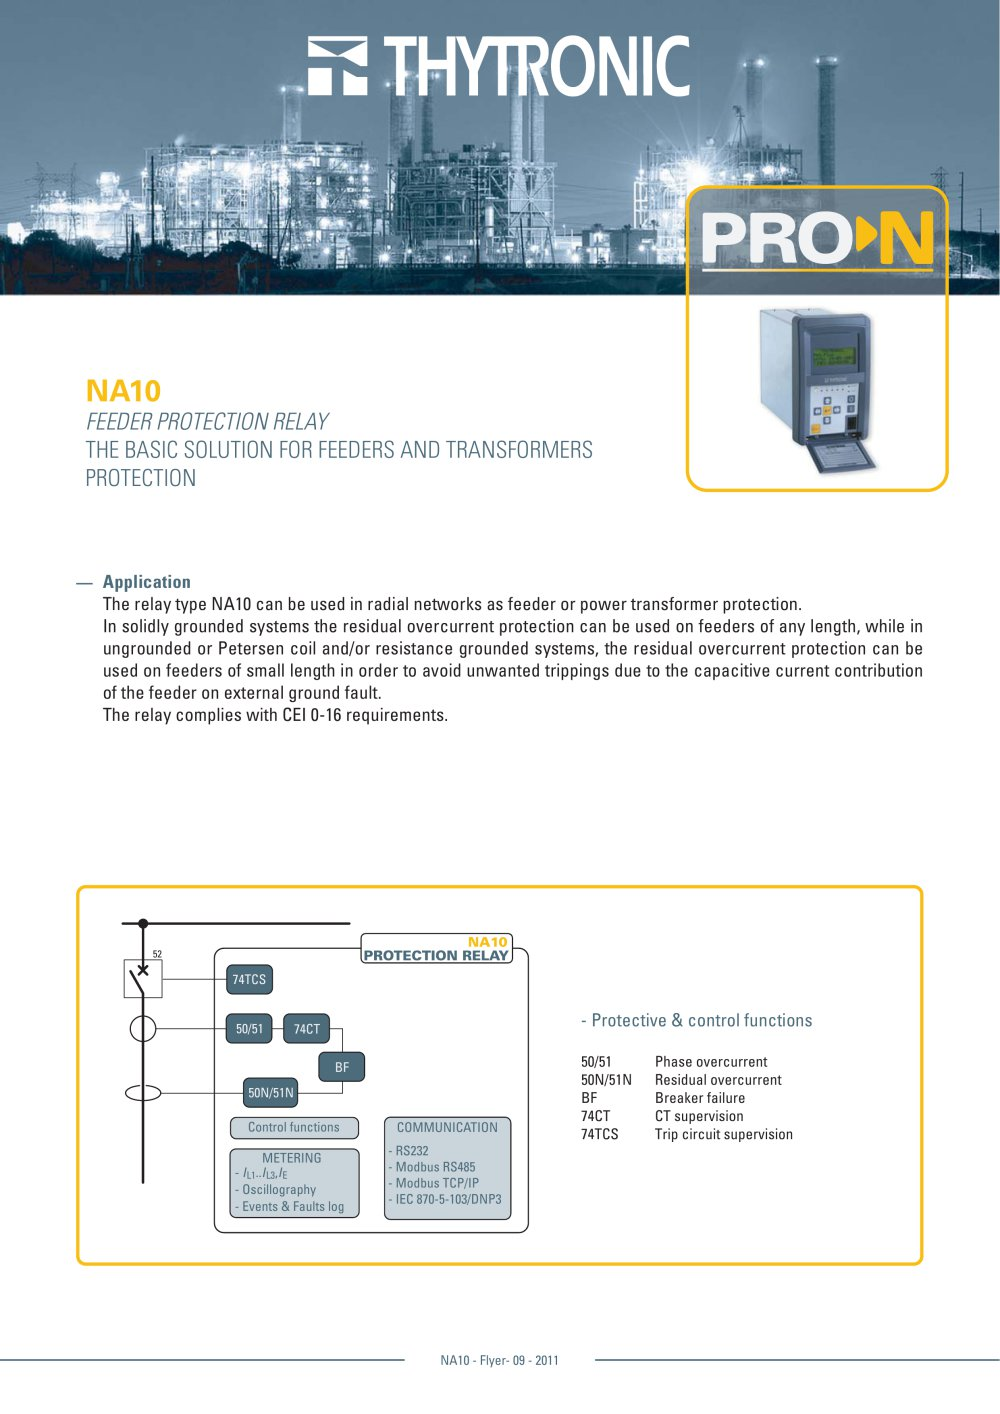 NA THYTRONIC PDF Catalogue Technical Documentation Brochure - Basic functions of a relay